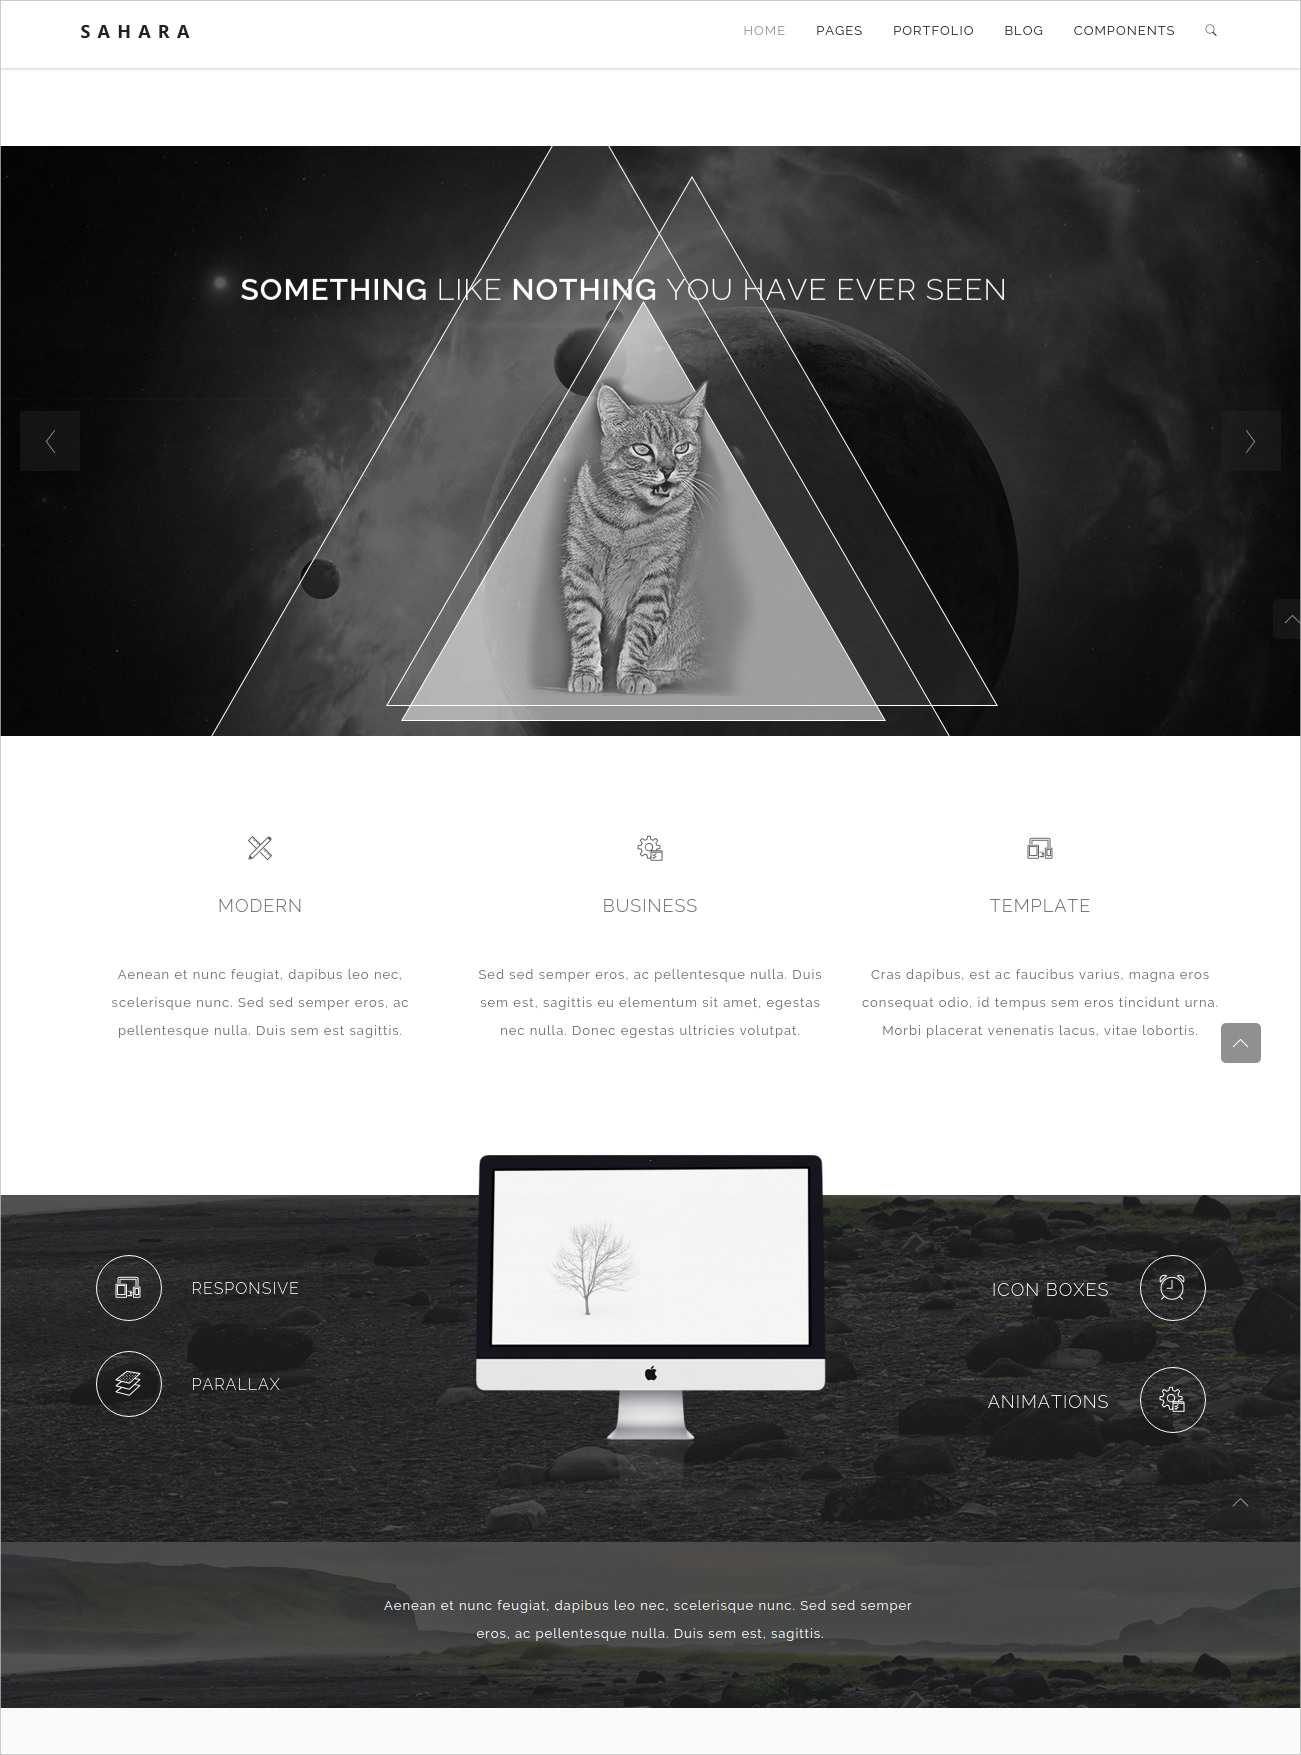 Multifaceted WP Theme for Business - $40